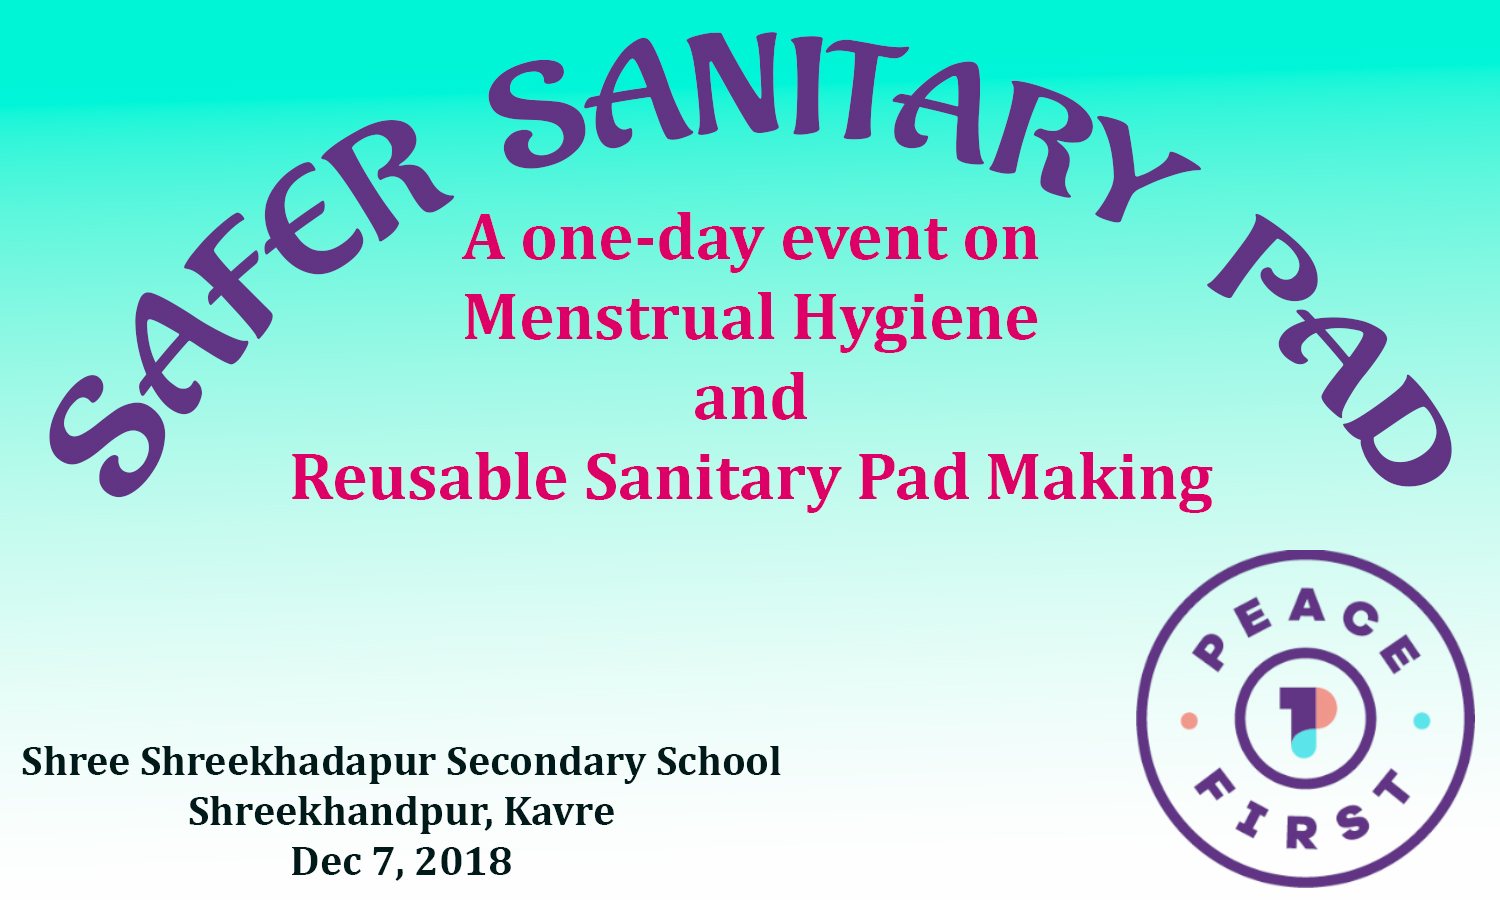 1df16cbdb What is the injustice we are solving  Most of the young girl in the  community don t have proper knowledge about the Menstrual Hygiene.